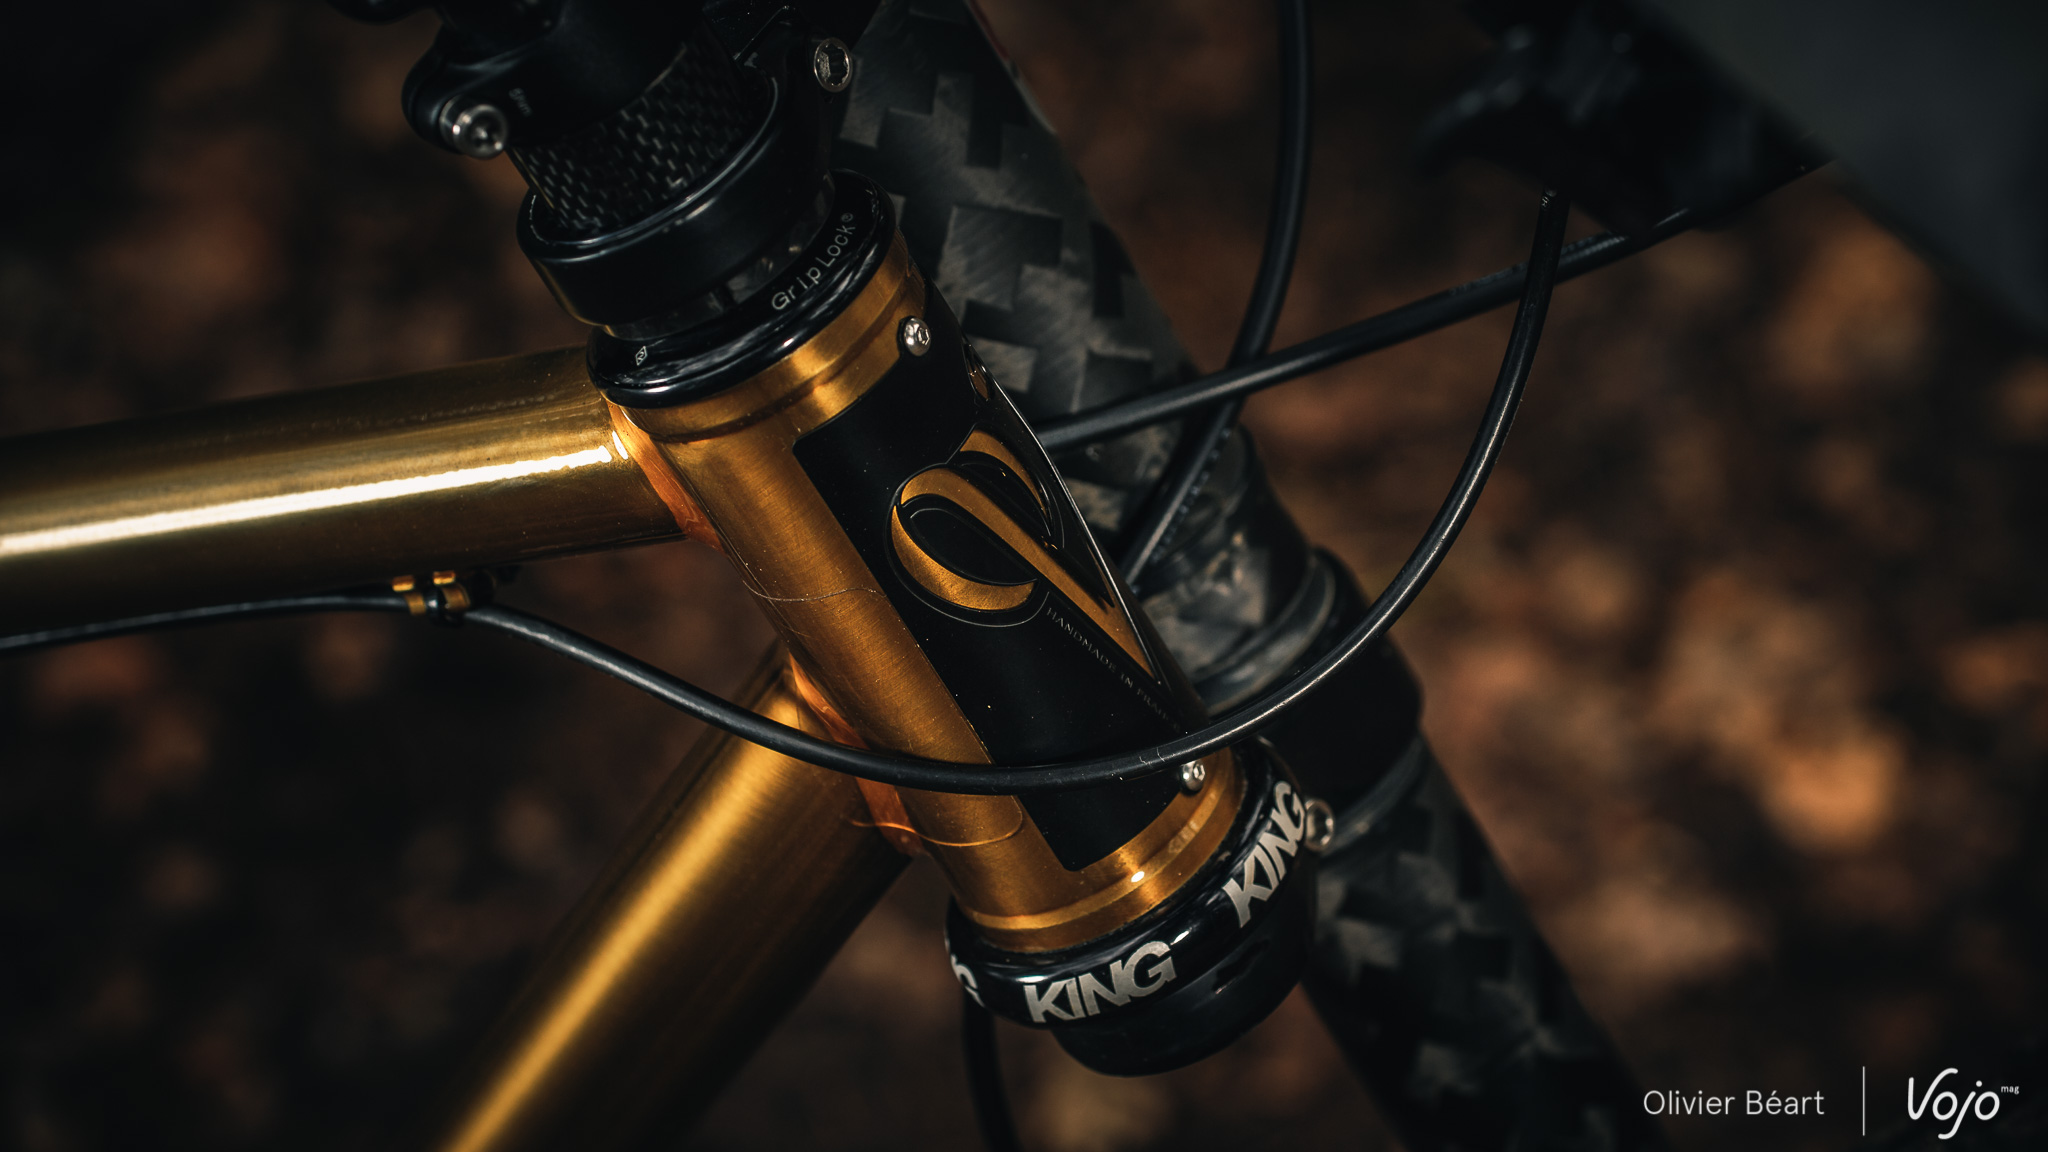 Victoire_Cycles_Gold_Copyright_OBeart_VojoMag-15